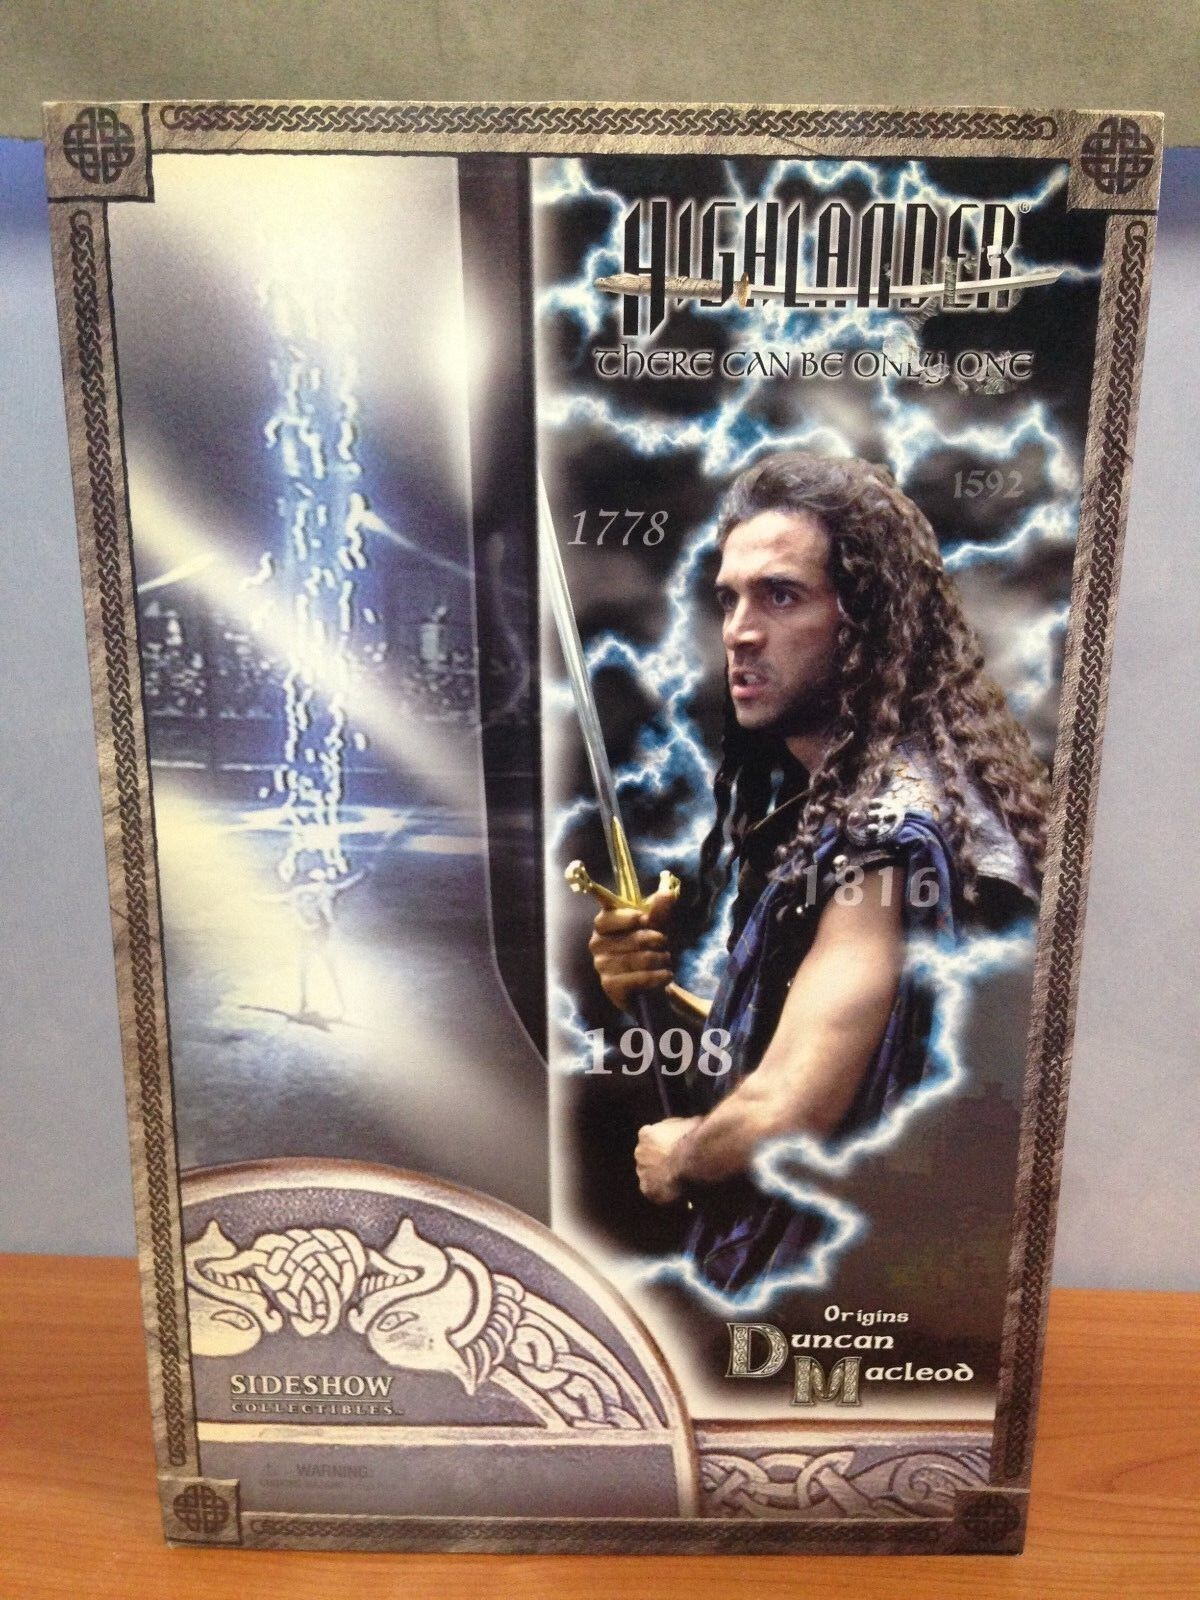 Sideshow Collectibles Highlander 1 6 Scale Action Figure - Duncan MacLeod - MISB